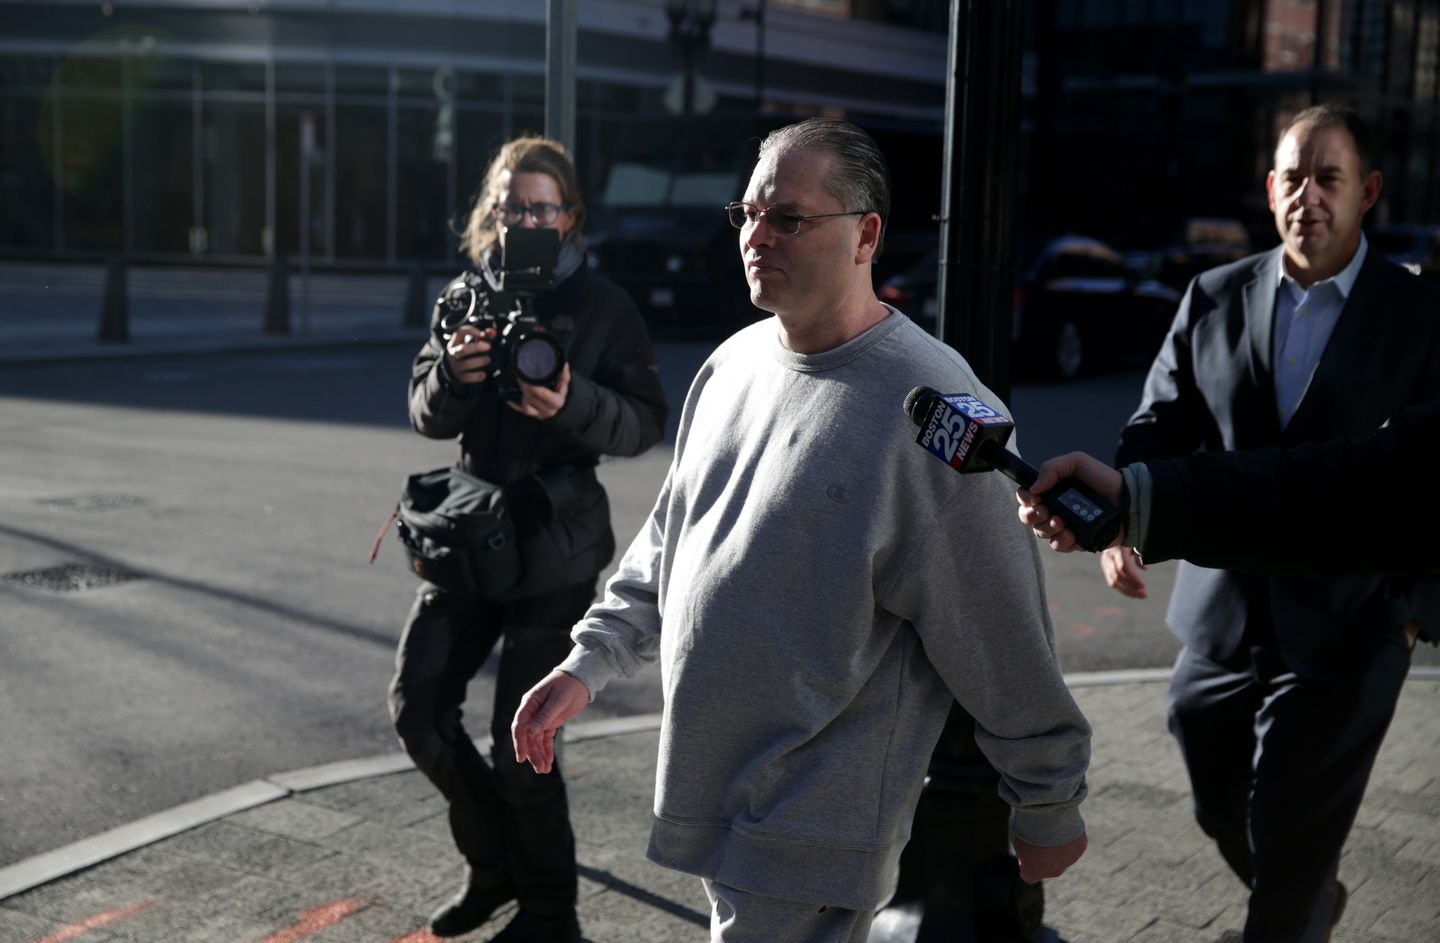 David Turner, a longtime suspect in the Gardner museum heist, was released from federal custody after serving nearly 21 years for plotting to rob an armored car facility in 1999.